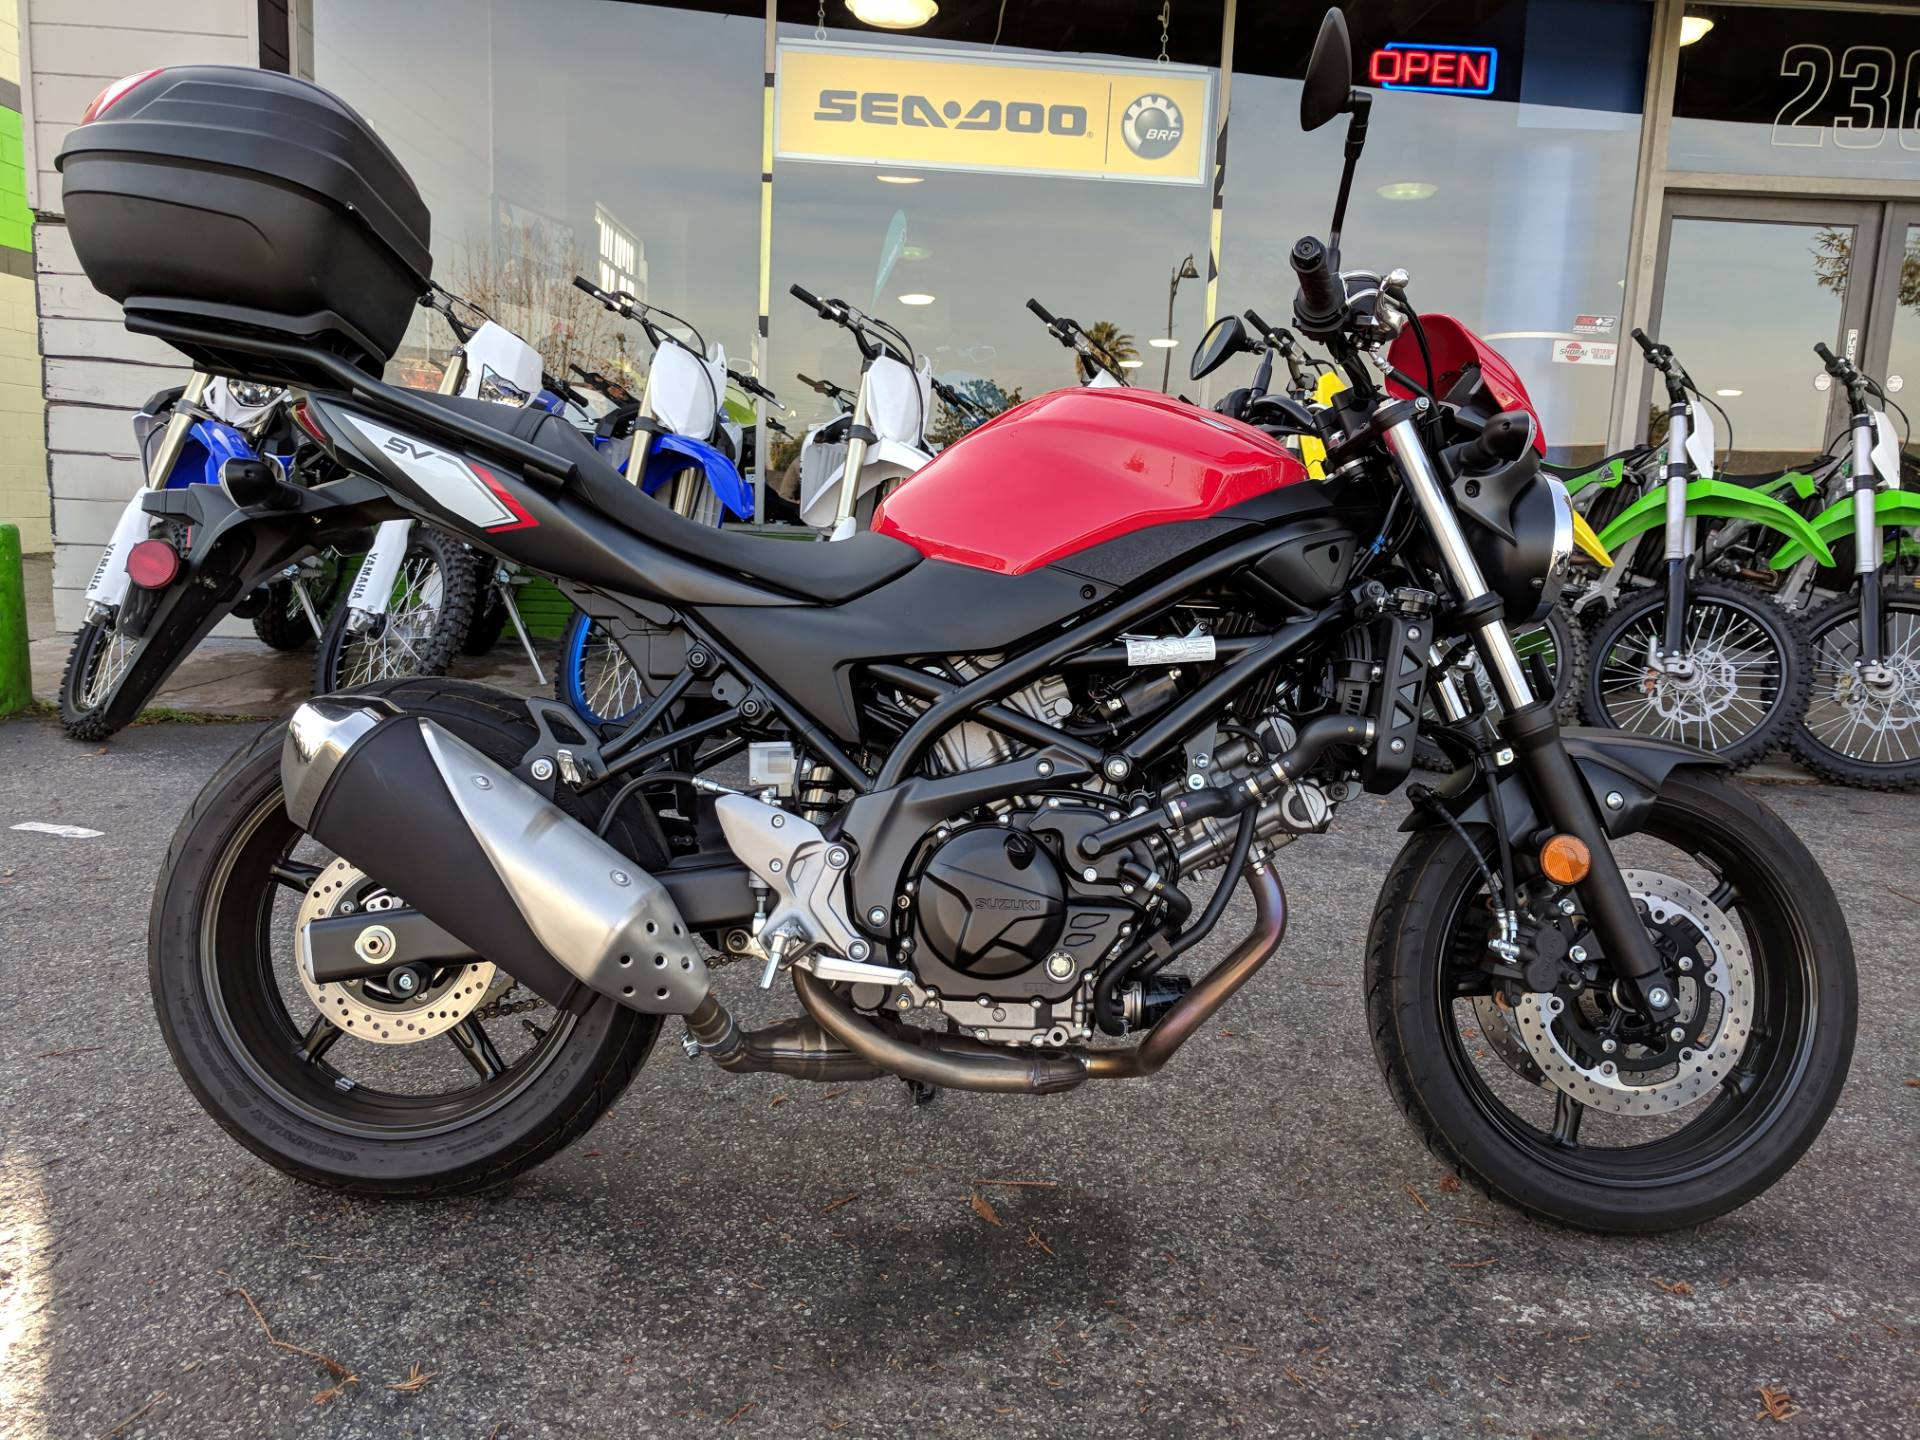 2017 Suzuki SV650 for sale 106711